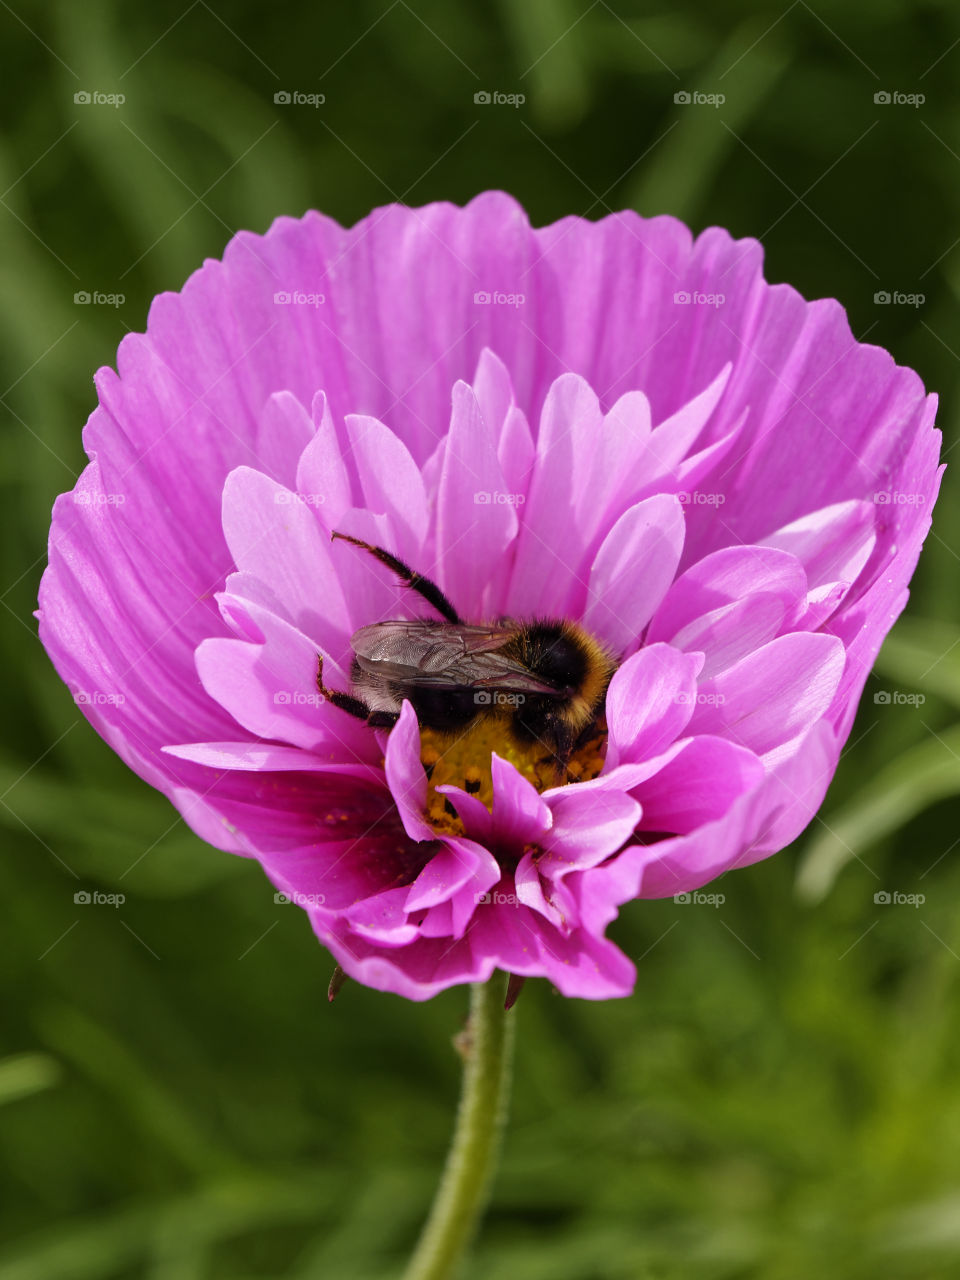 Bumblebee in a cosmo flower